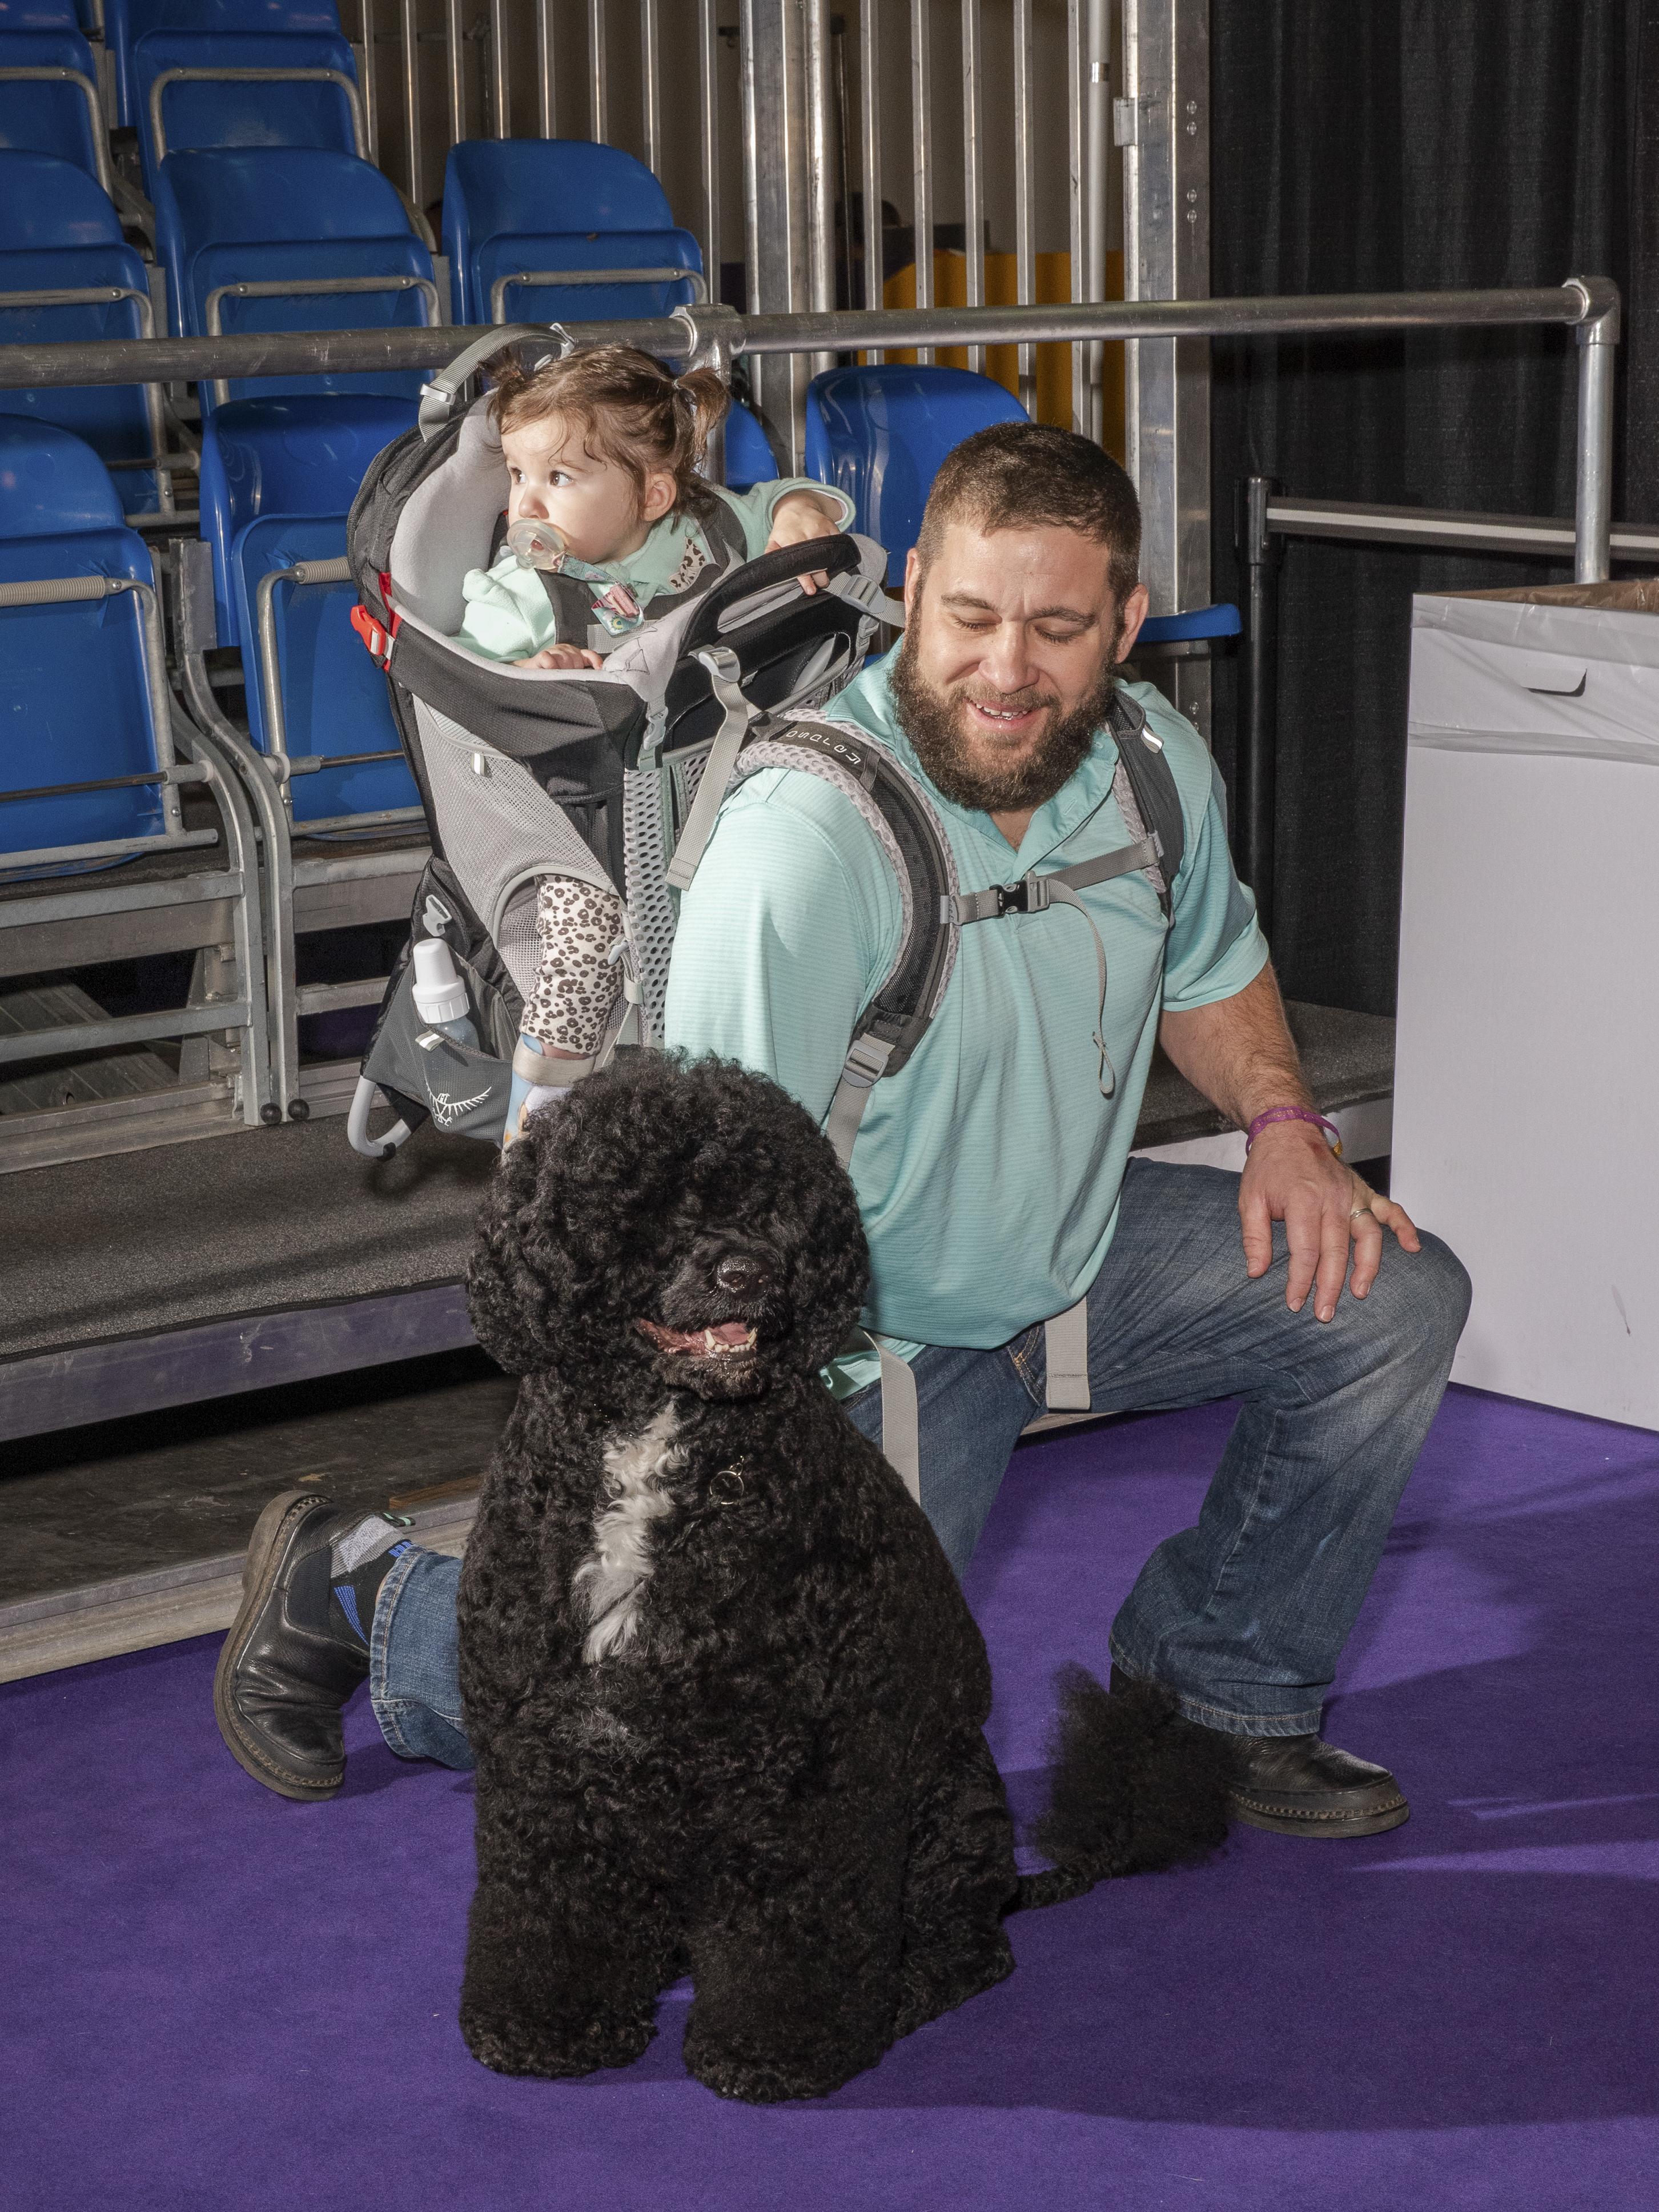 Mike Medina poses with his daughter and Portugese Water Dog on Feb. 11, 2020.